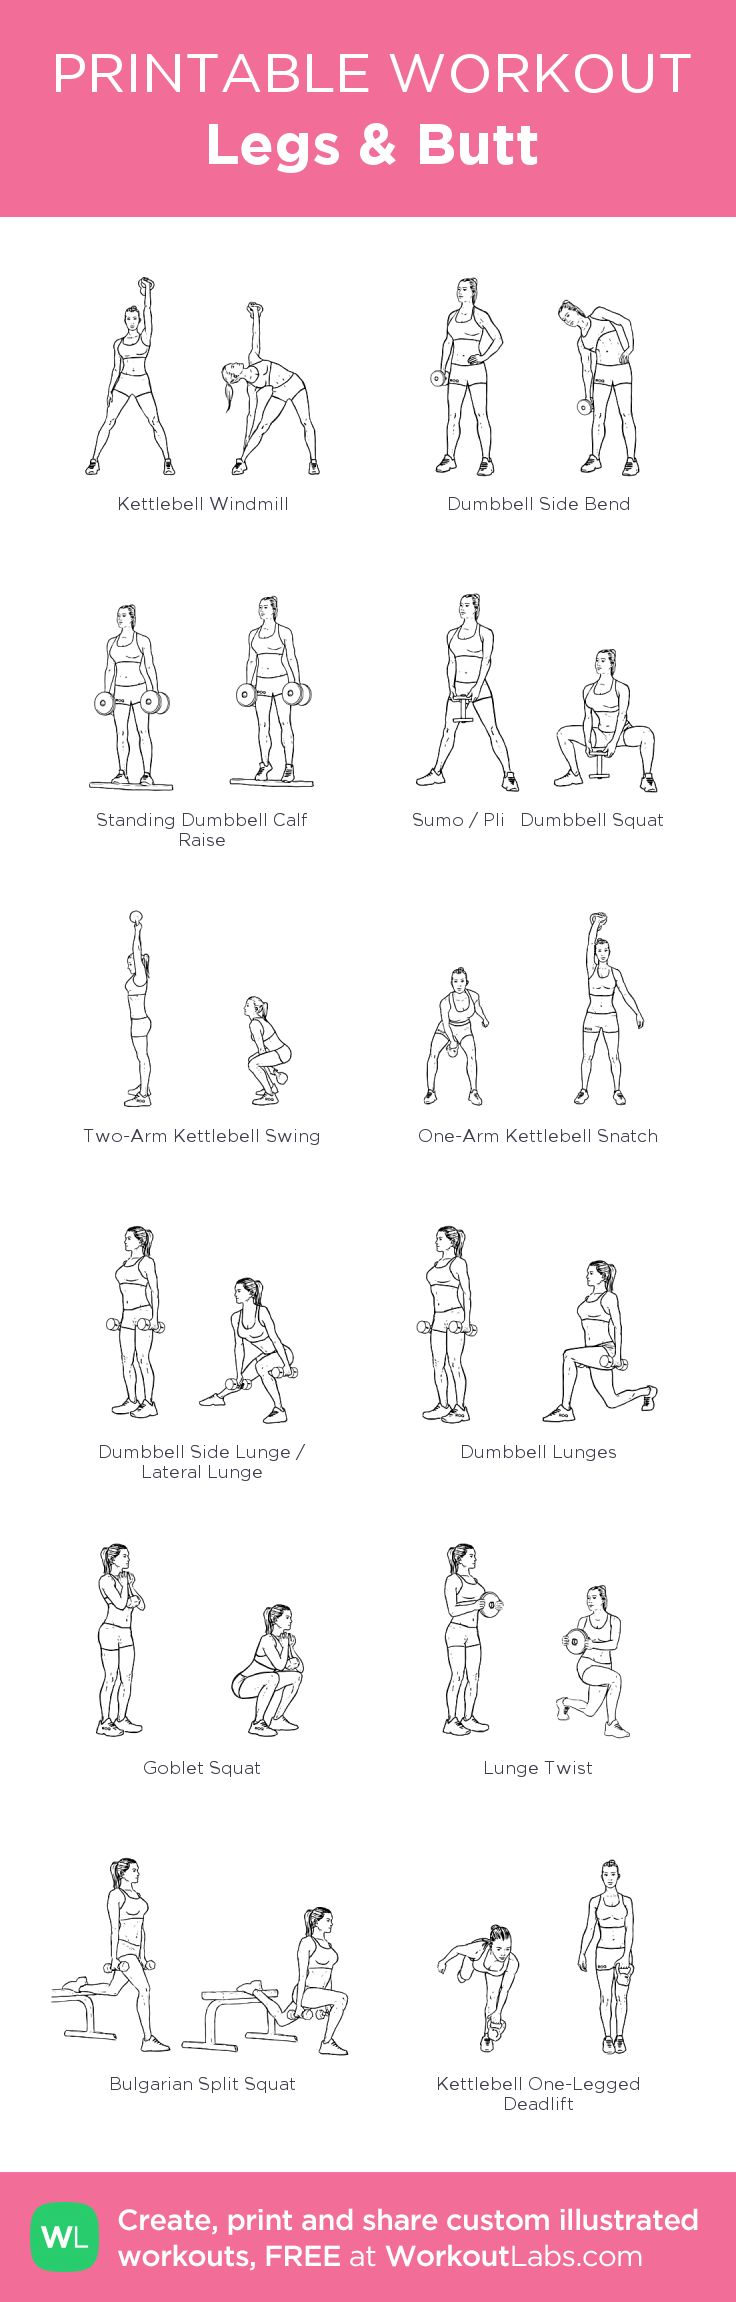 Legs & Butt: my visual workout created at WorkoutLabs.com • Click through to customize and download as a FREE PDF! #customworkout